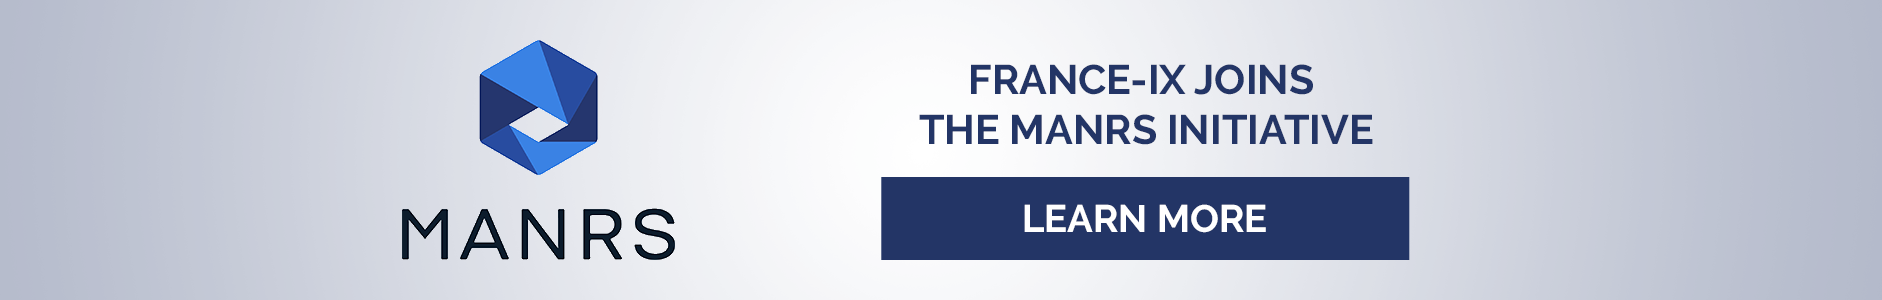 FRANCE-IX JOINS THE MANRS INITIATIVE